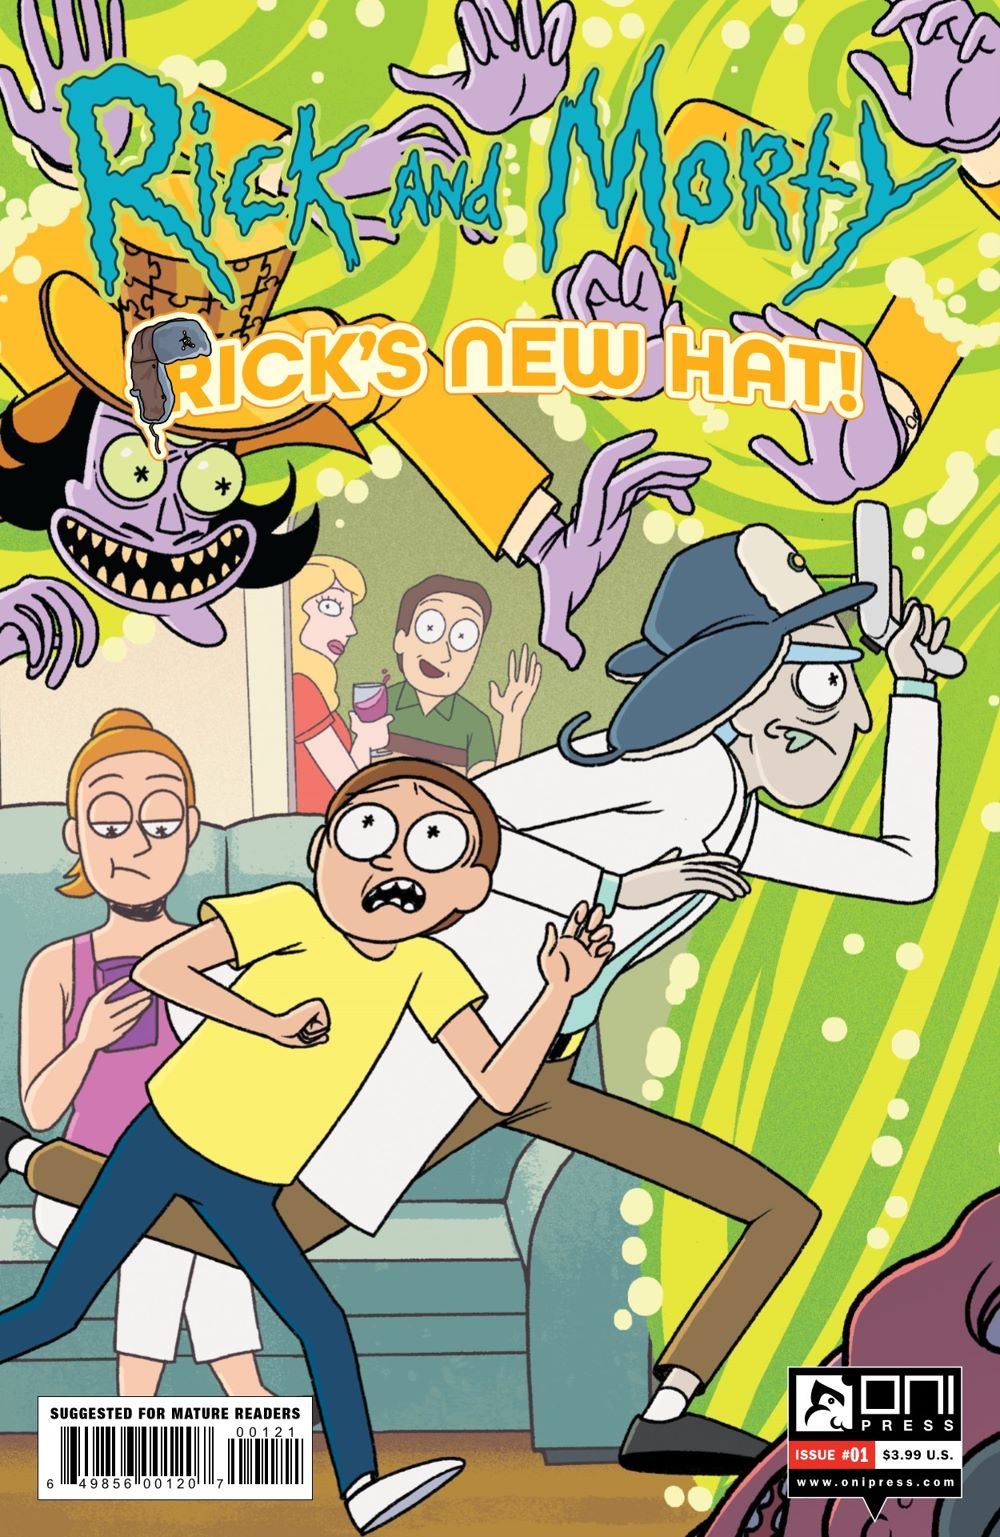 RM-RNH-1-MARKETING-02 ComicList Previews: RICK AND MORTY RICK'S NEW HAT #1